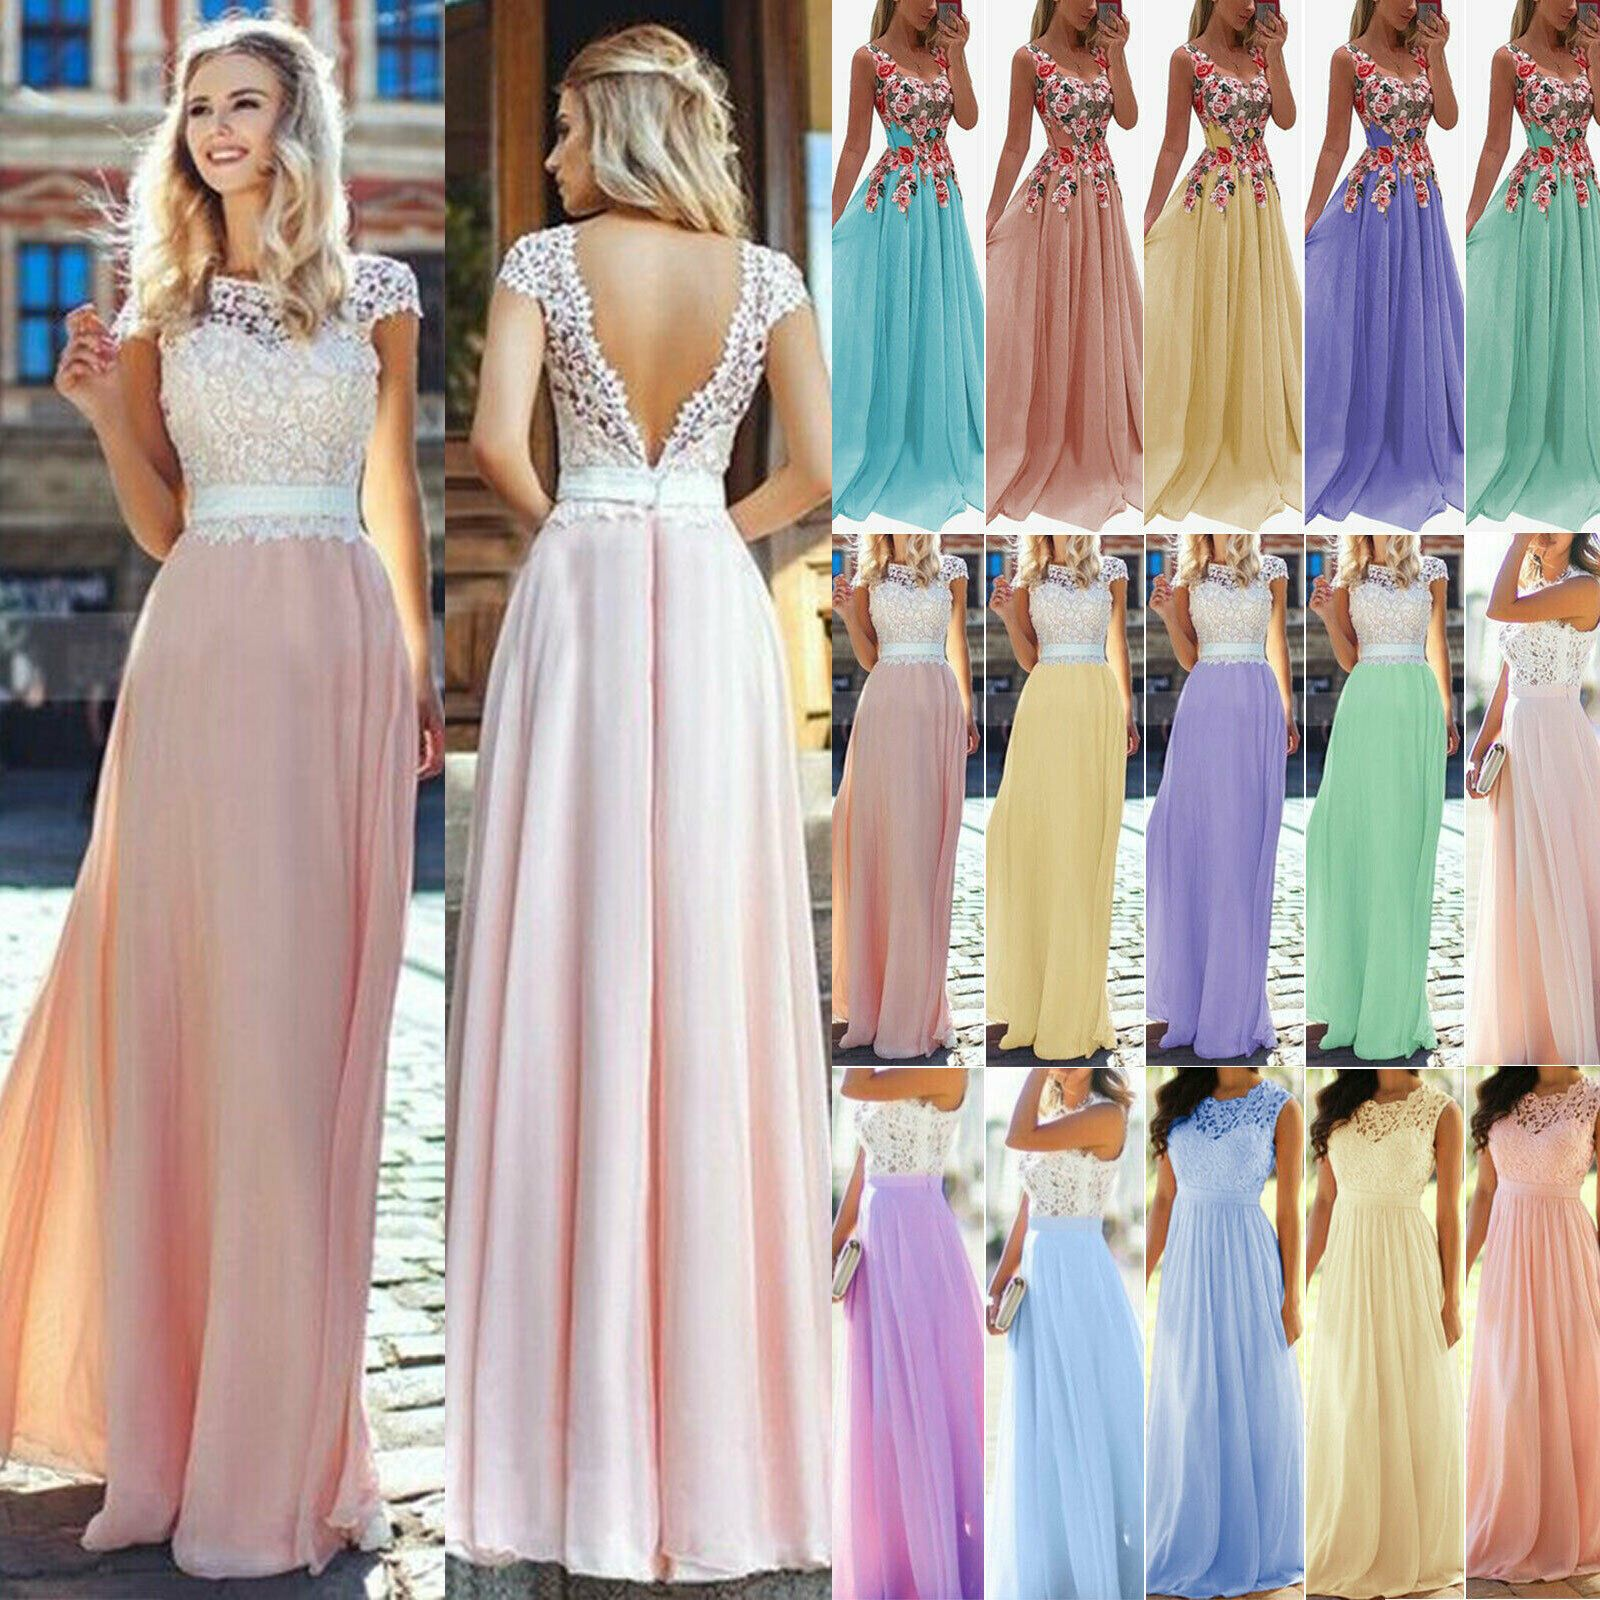 Women Formal Wedding Bridesmaid Evening Party Ball Prom Maxi Floral Lace Dress Lace Dresses Ideas Of L Lace Dress Chiffon Dress Long Backless Evening Dress